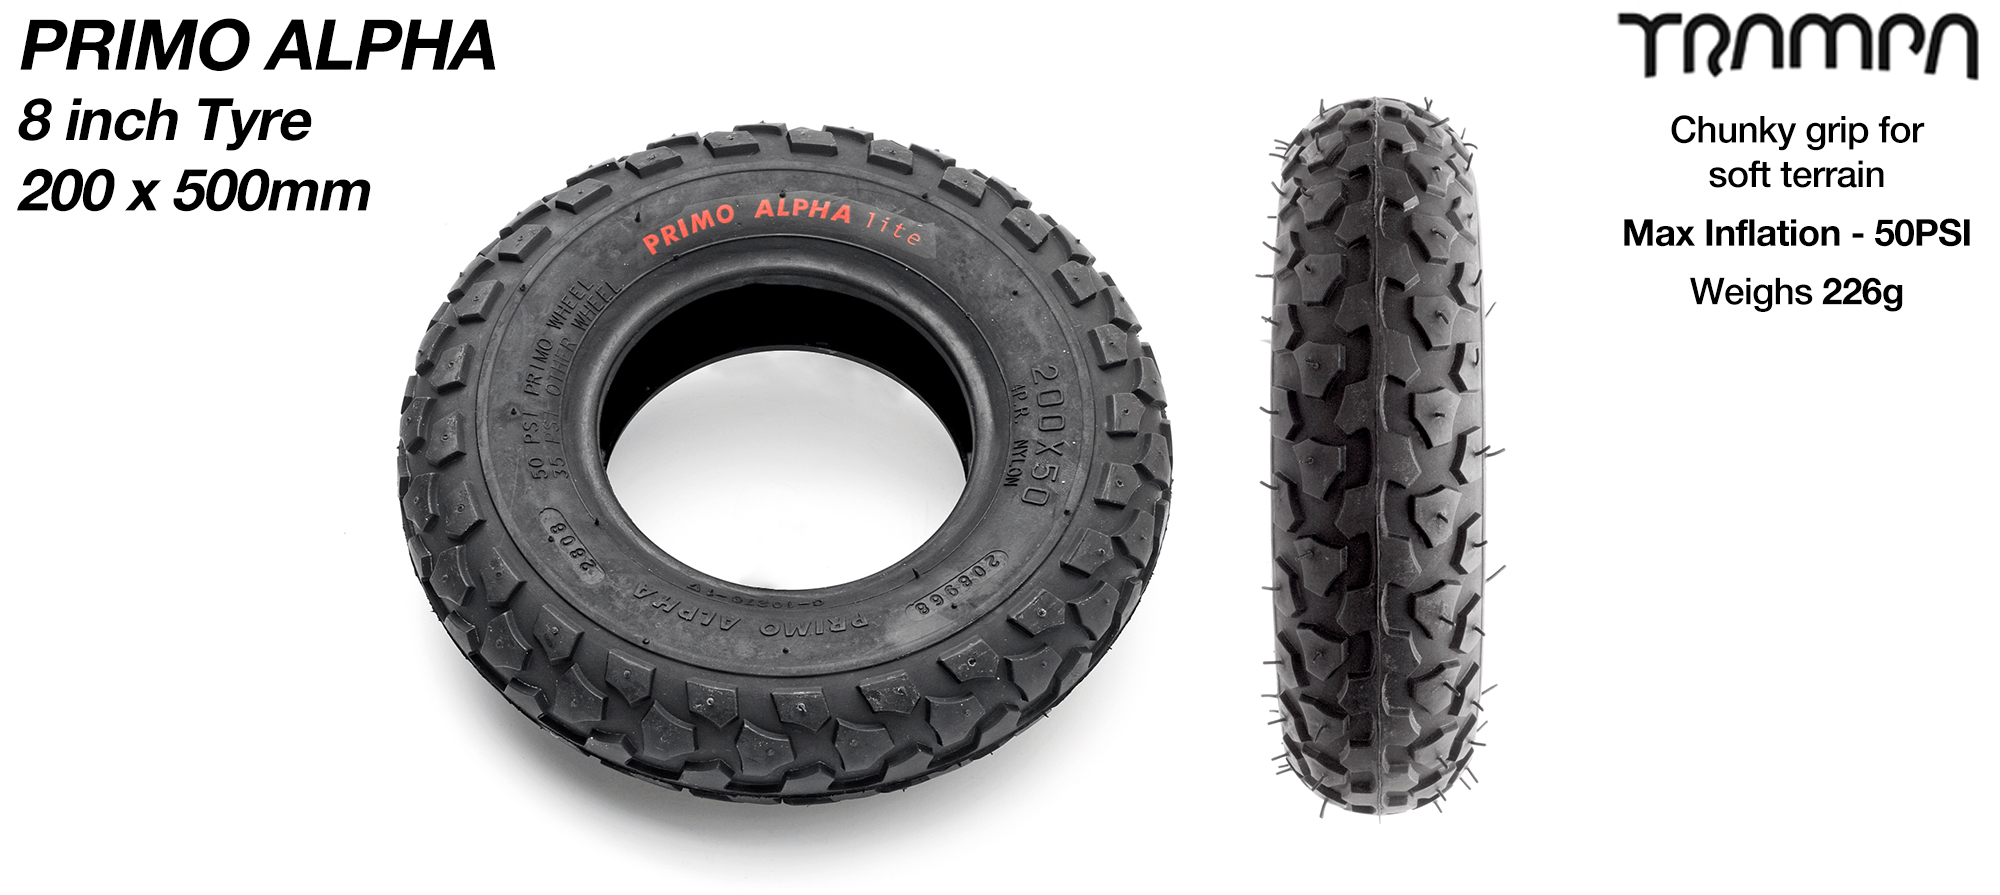 PRIMO ALPHA - Premium 8 Inch All purpose Dirt Tyres